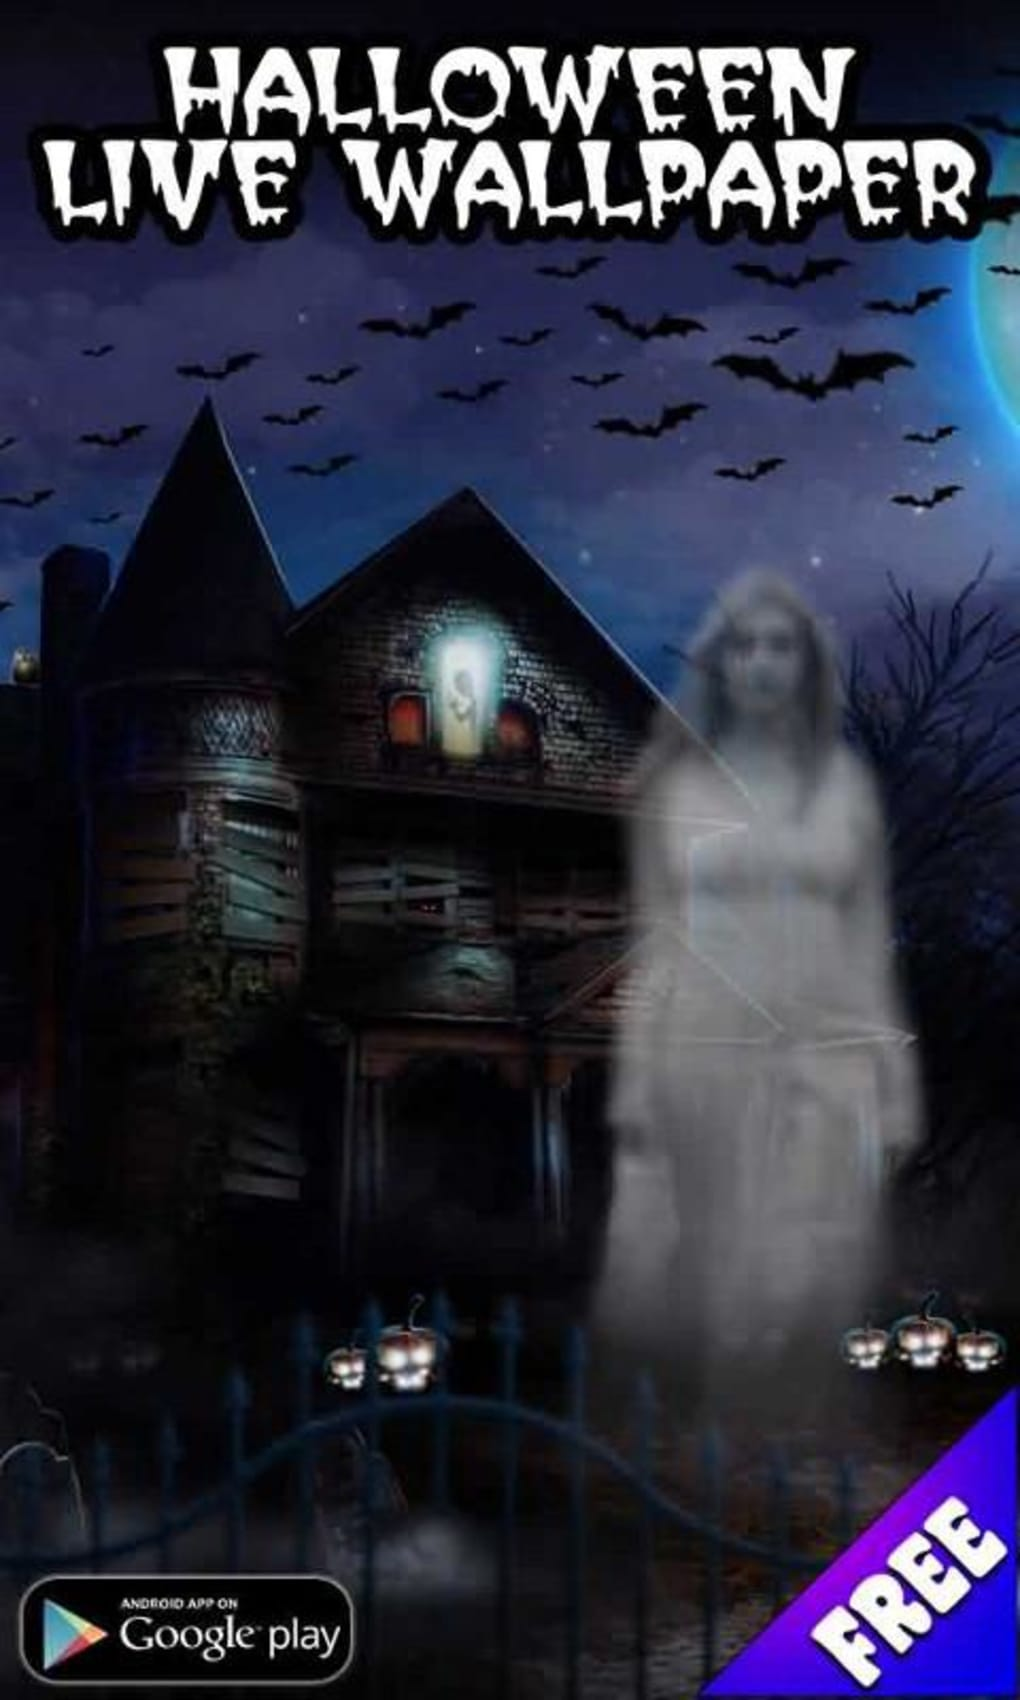 Halloween Live Wallpaper APK for Android   Download 1020x1700